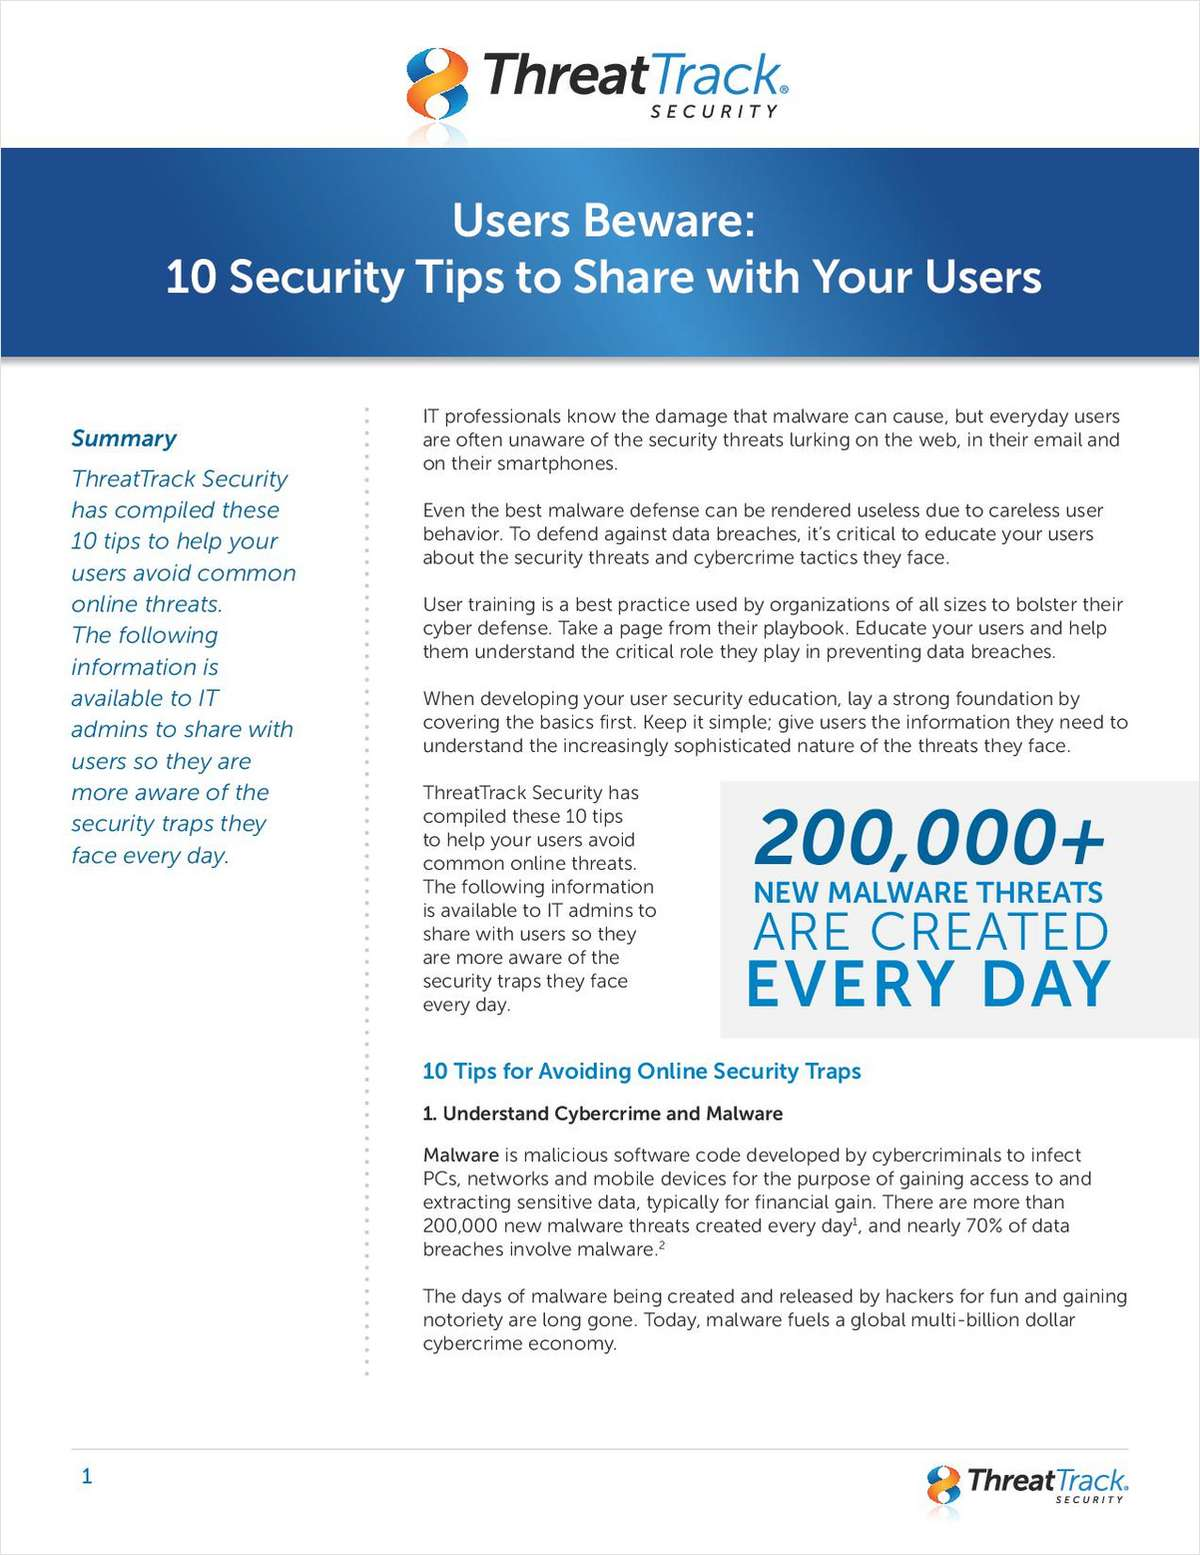 Users Beware: 10 Security Tips to Share with Your Users